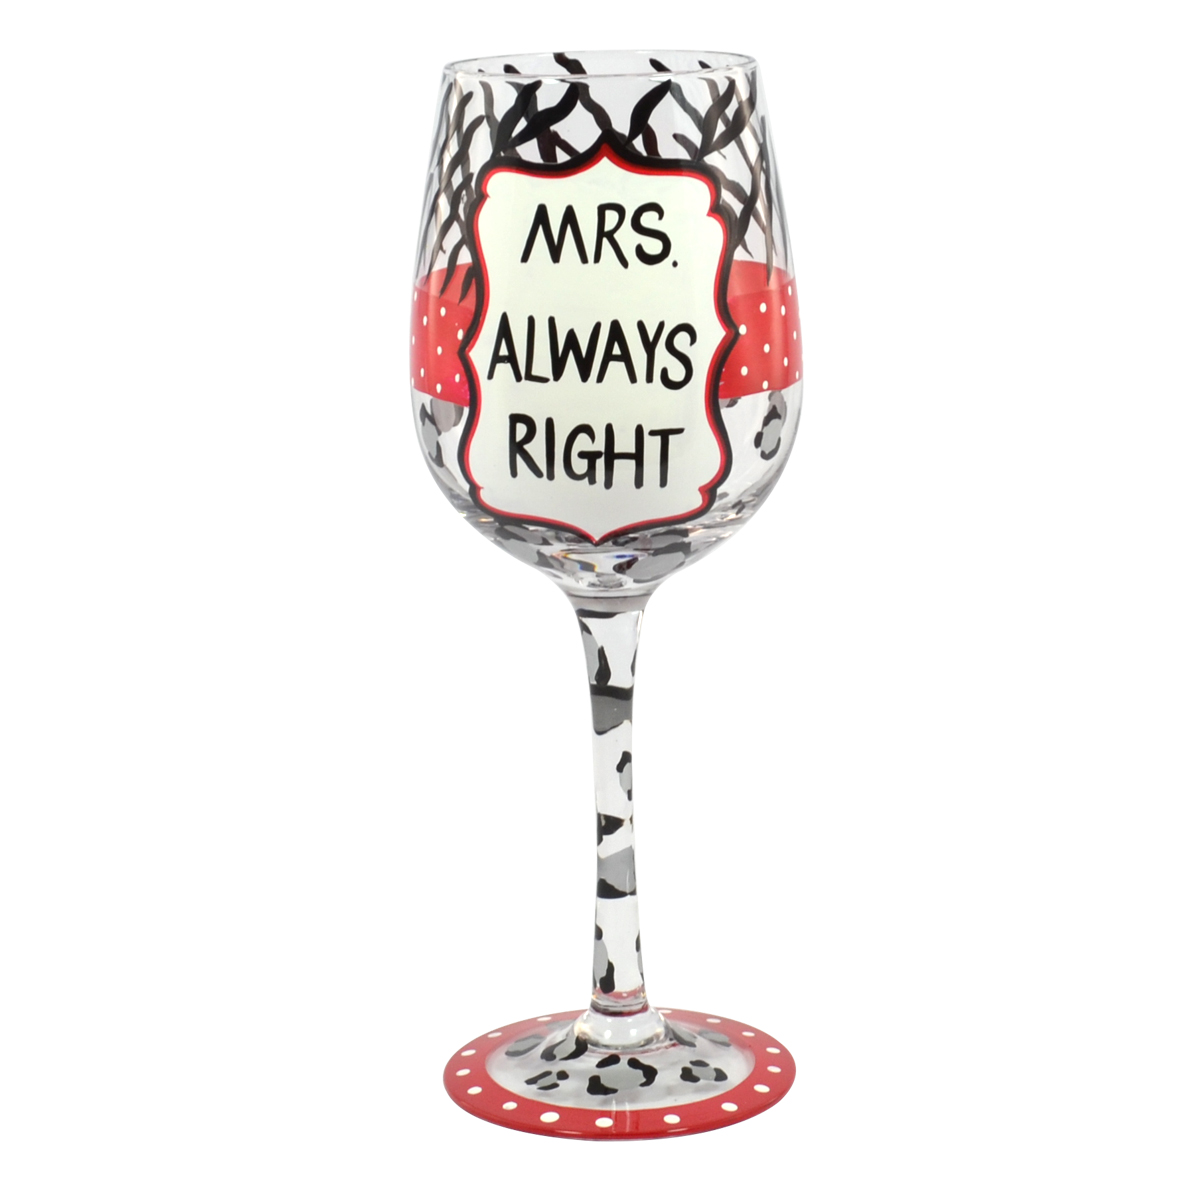 Bettwäsche Mrs Always Right Mrs Always Right Off The Cuff Decorated Wine Glass In Gift